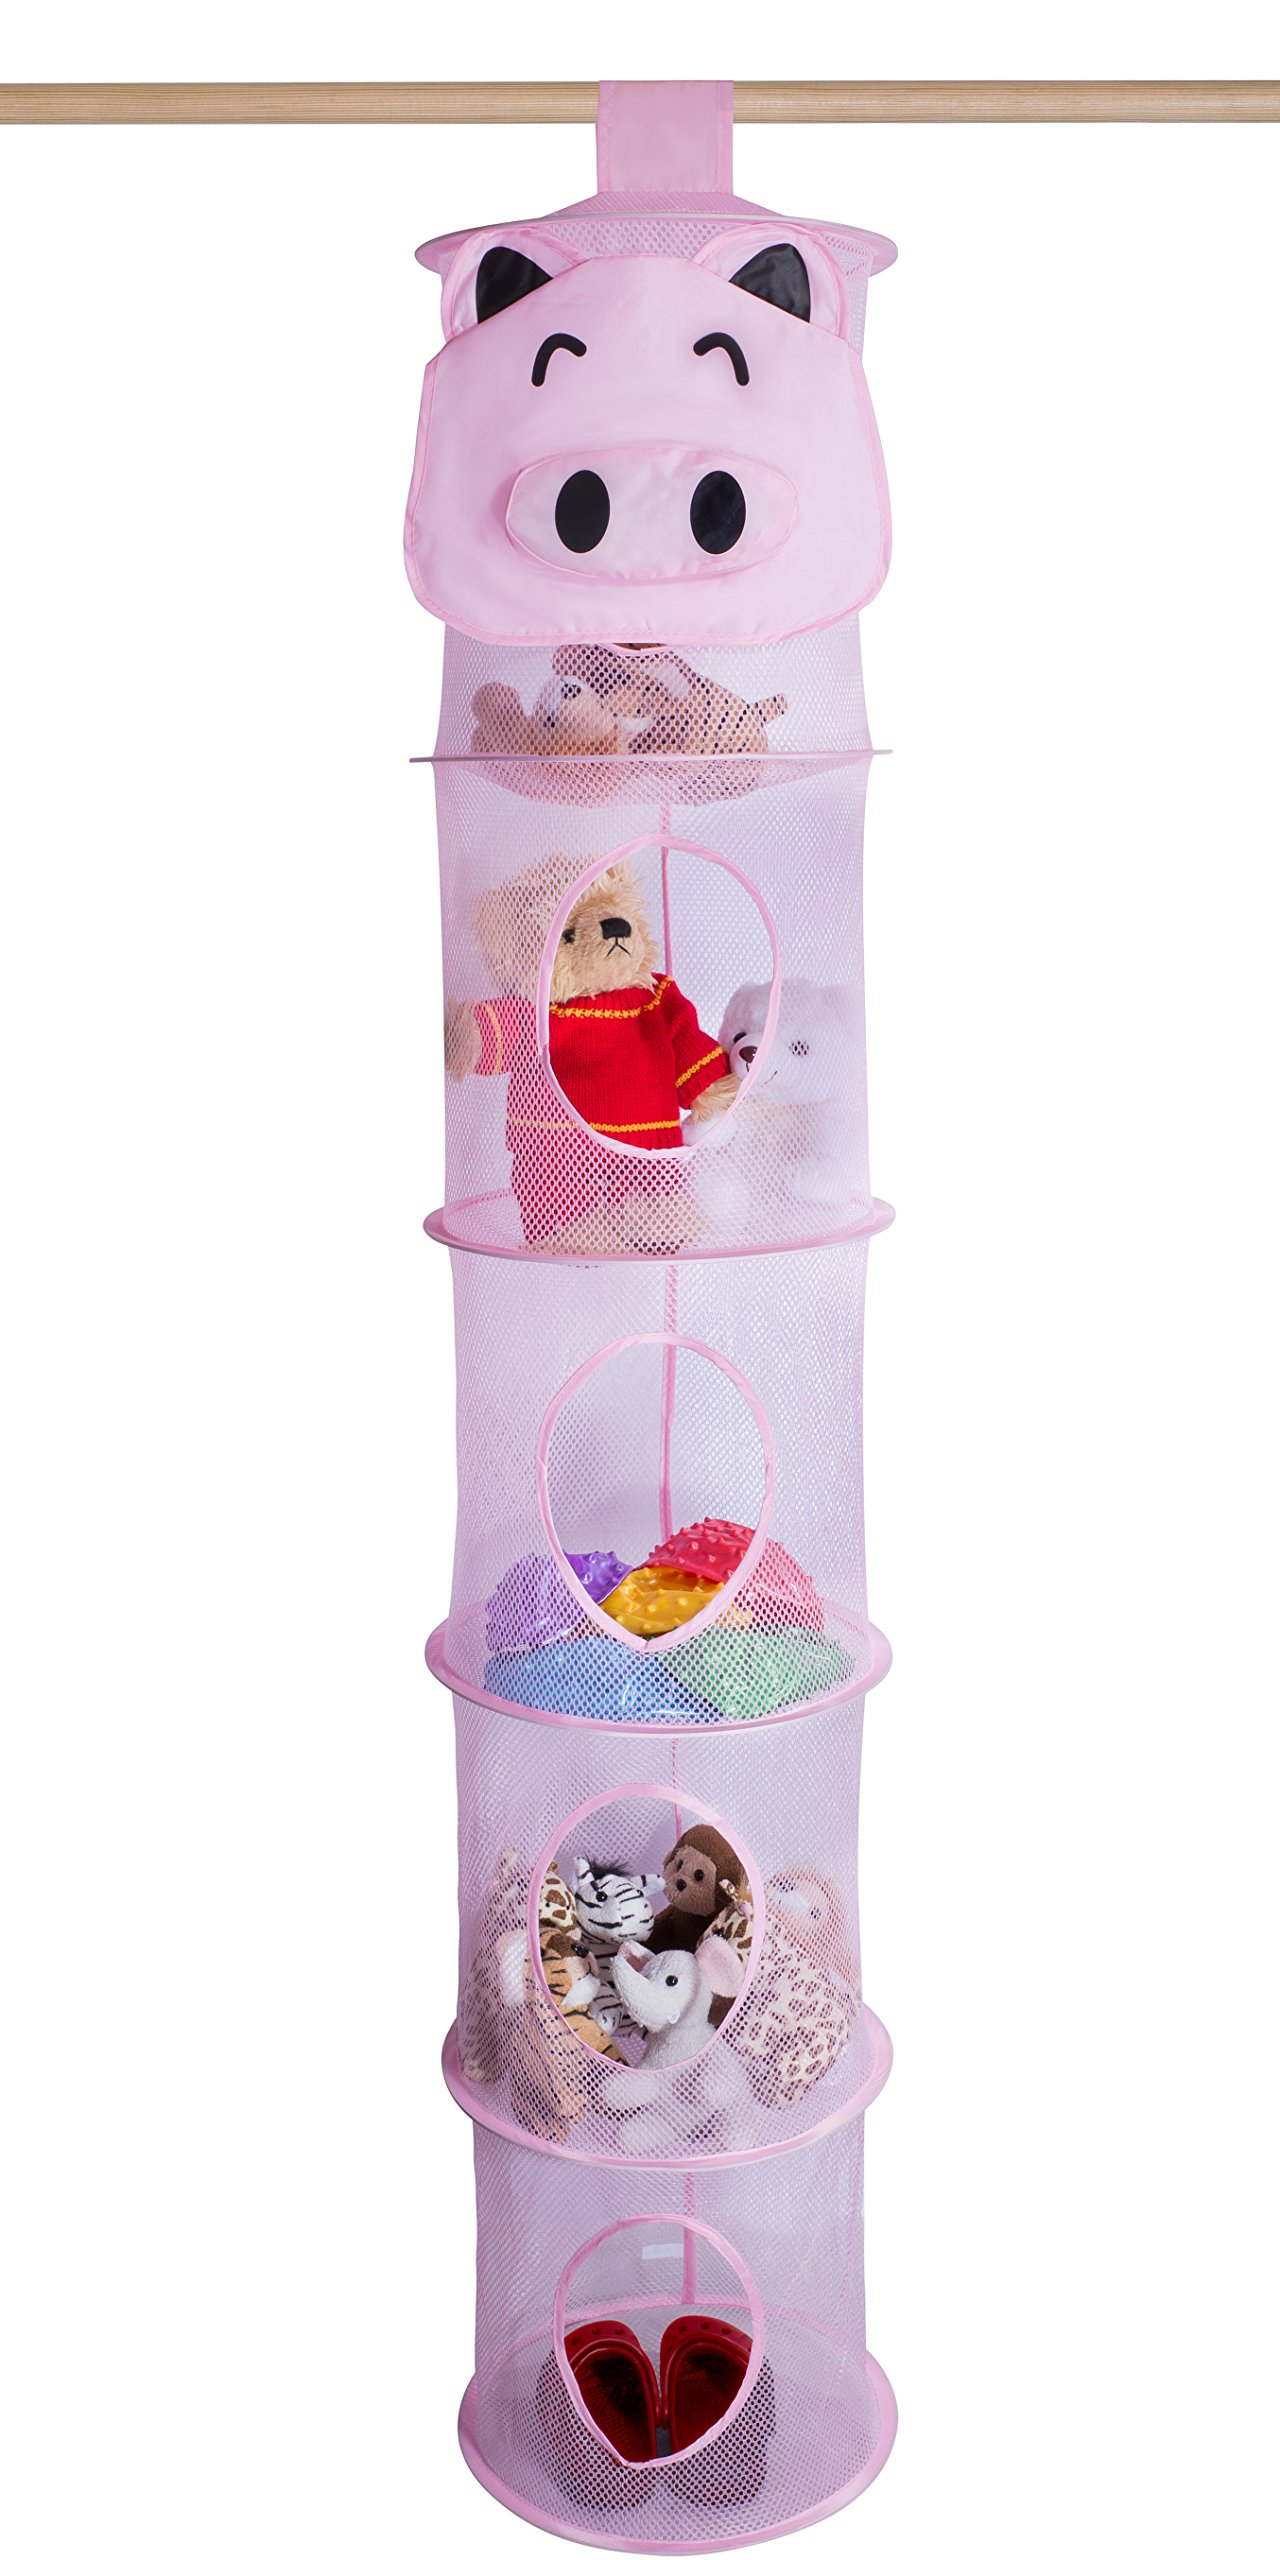 5 Tier Storage Organizer - 12'' X 59'' - Hang in Your Children's Room or Closet for a Fun Way to Organize Kids Toys or Store Gloves, Shawls, Hats and Mittens. Attaches Easily to Any Rod. (Pig)